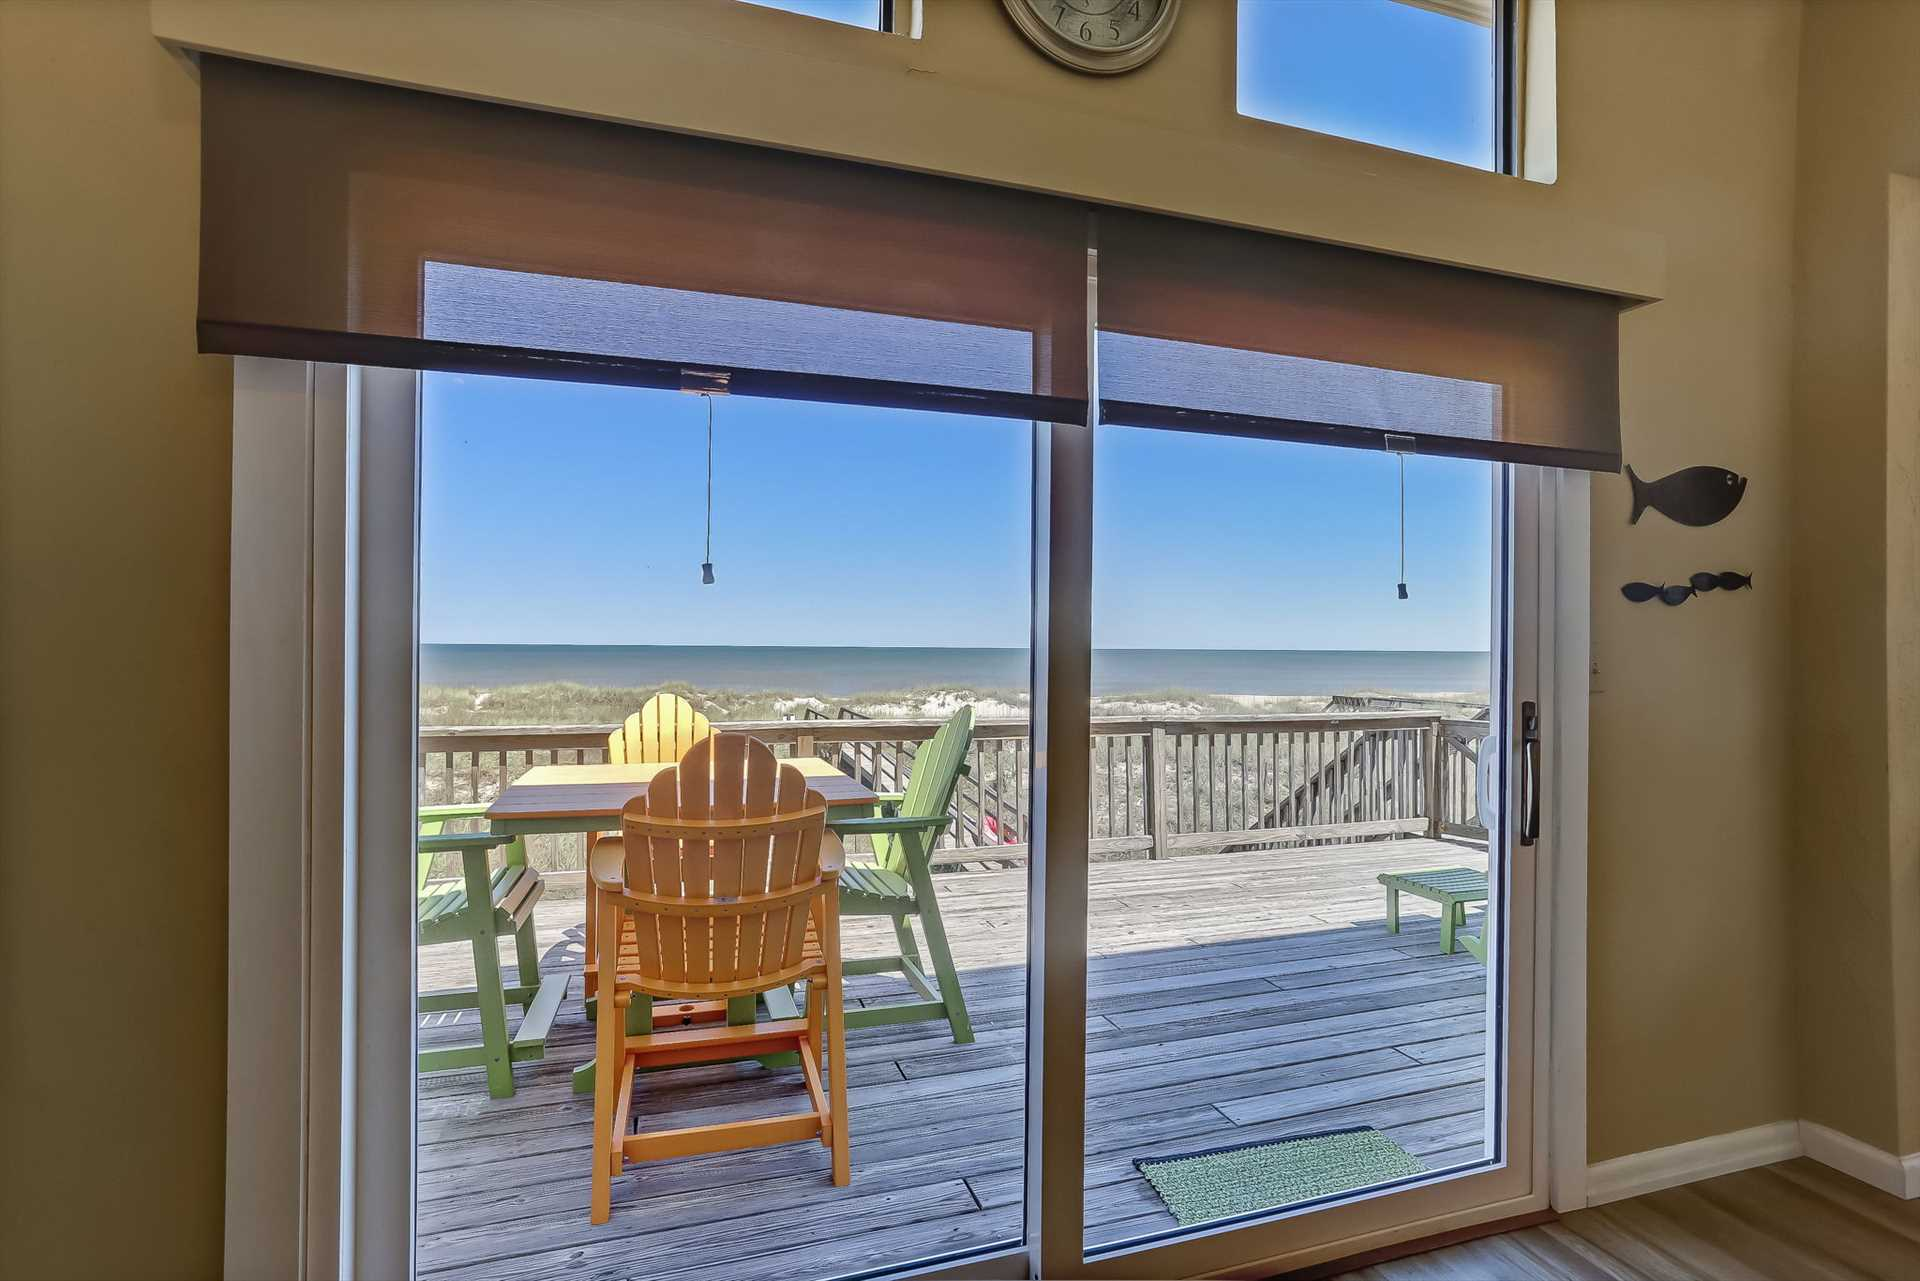 From living area looking out onto deck